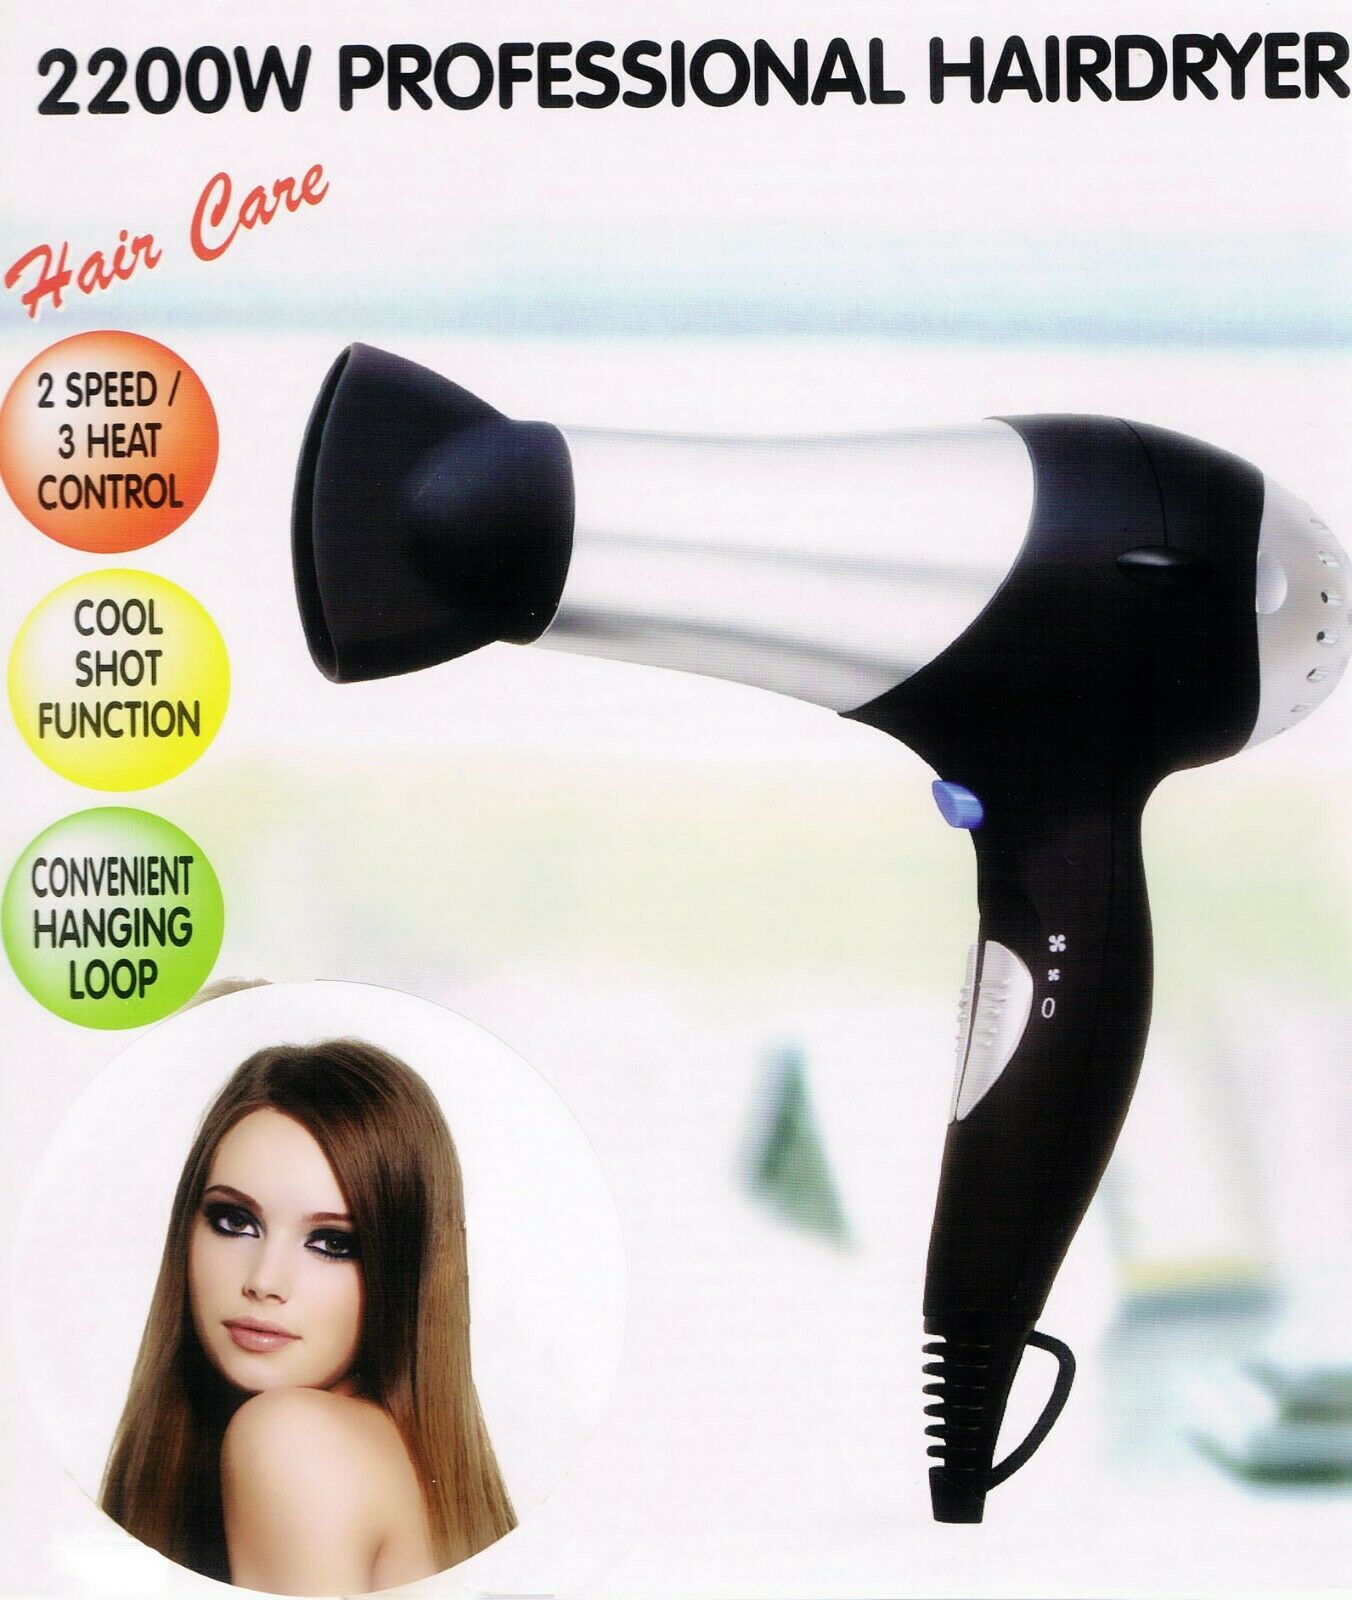 2200W Professional Hair Dryer 2 Speed 3 Heat Settings Concentrator Nozzle Black